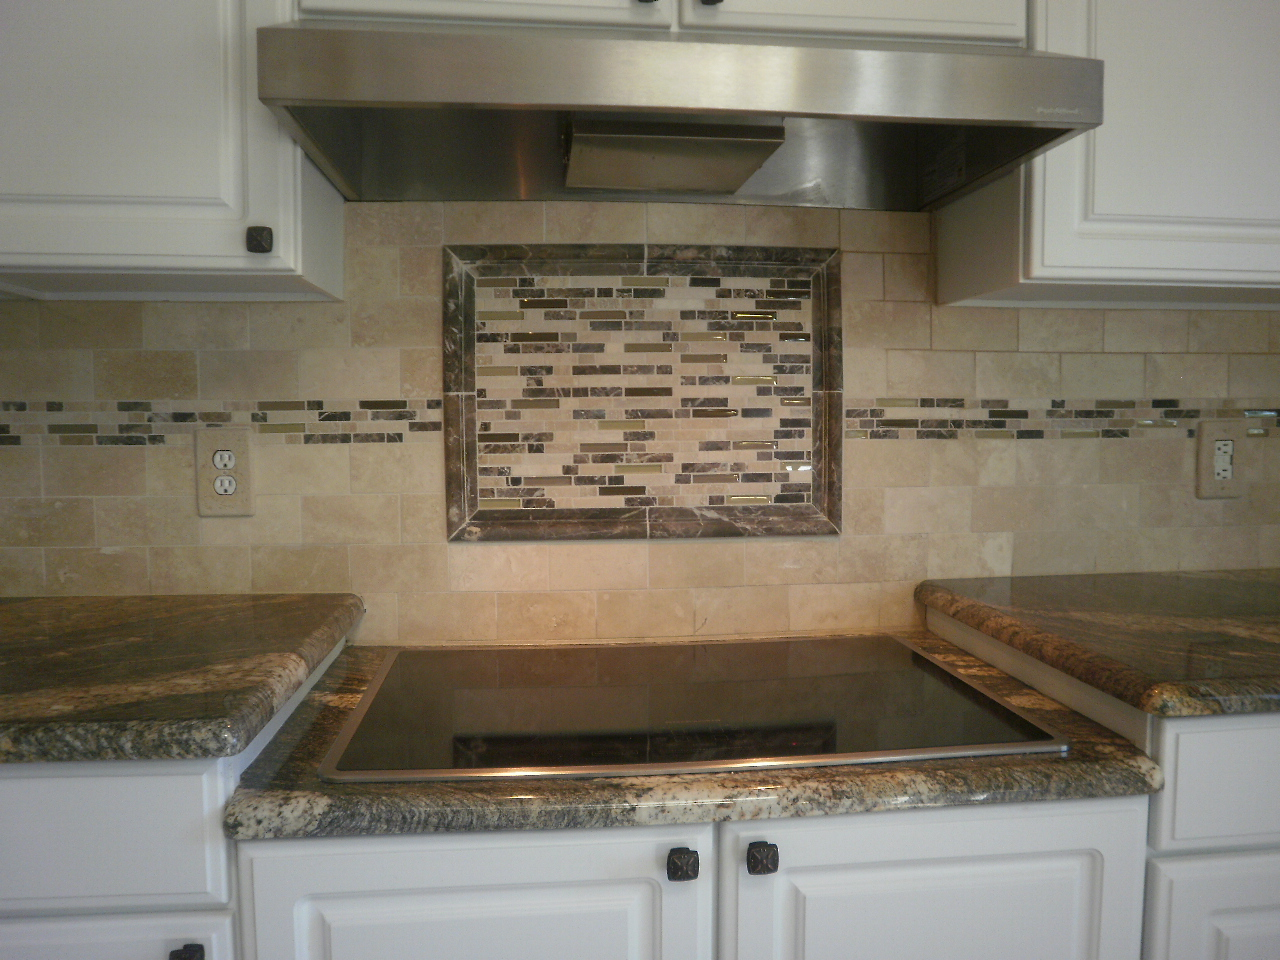 Kitchen Backsplash Ideas Glass Tile Afreakatheart: kitchen design of tiles